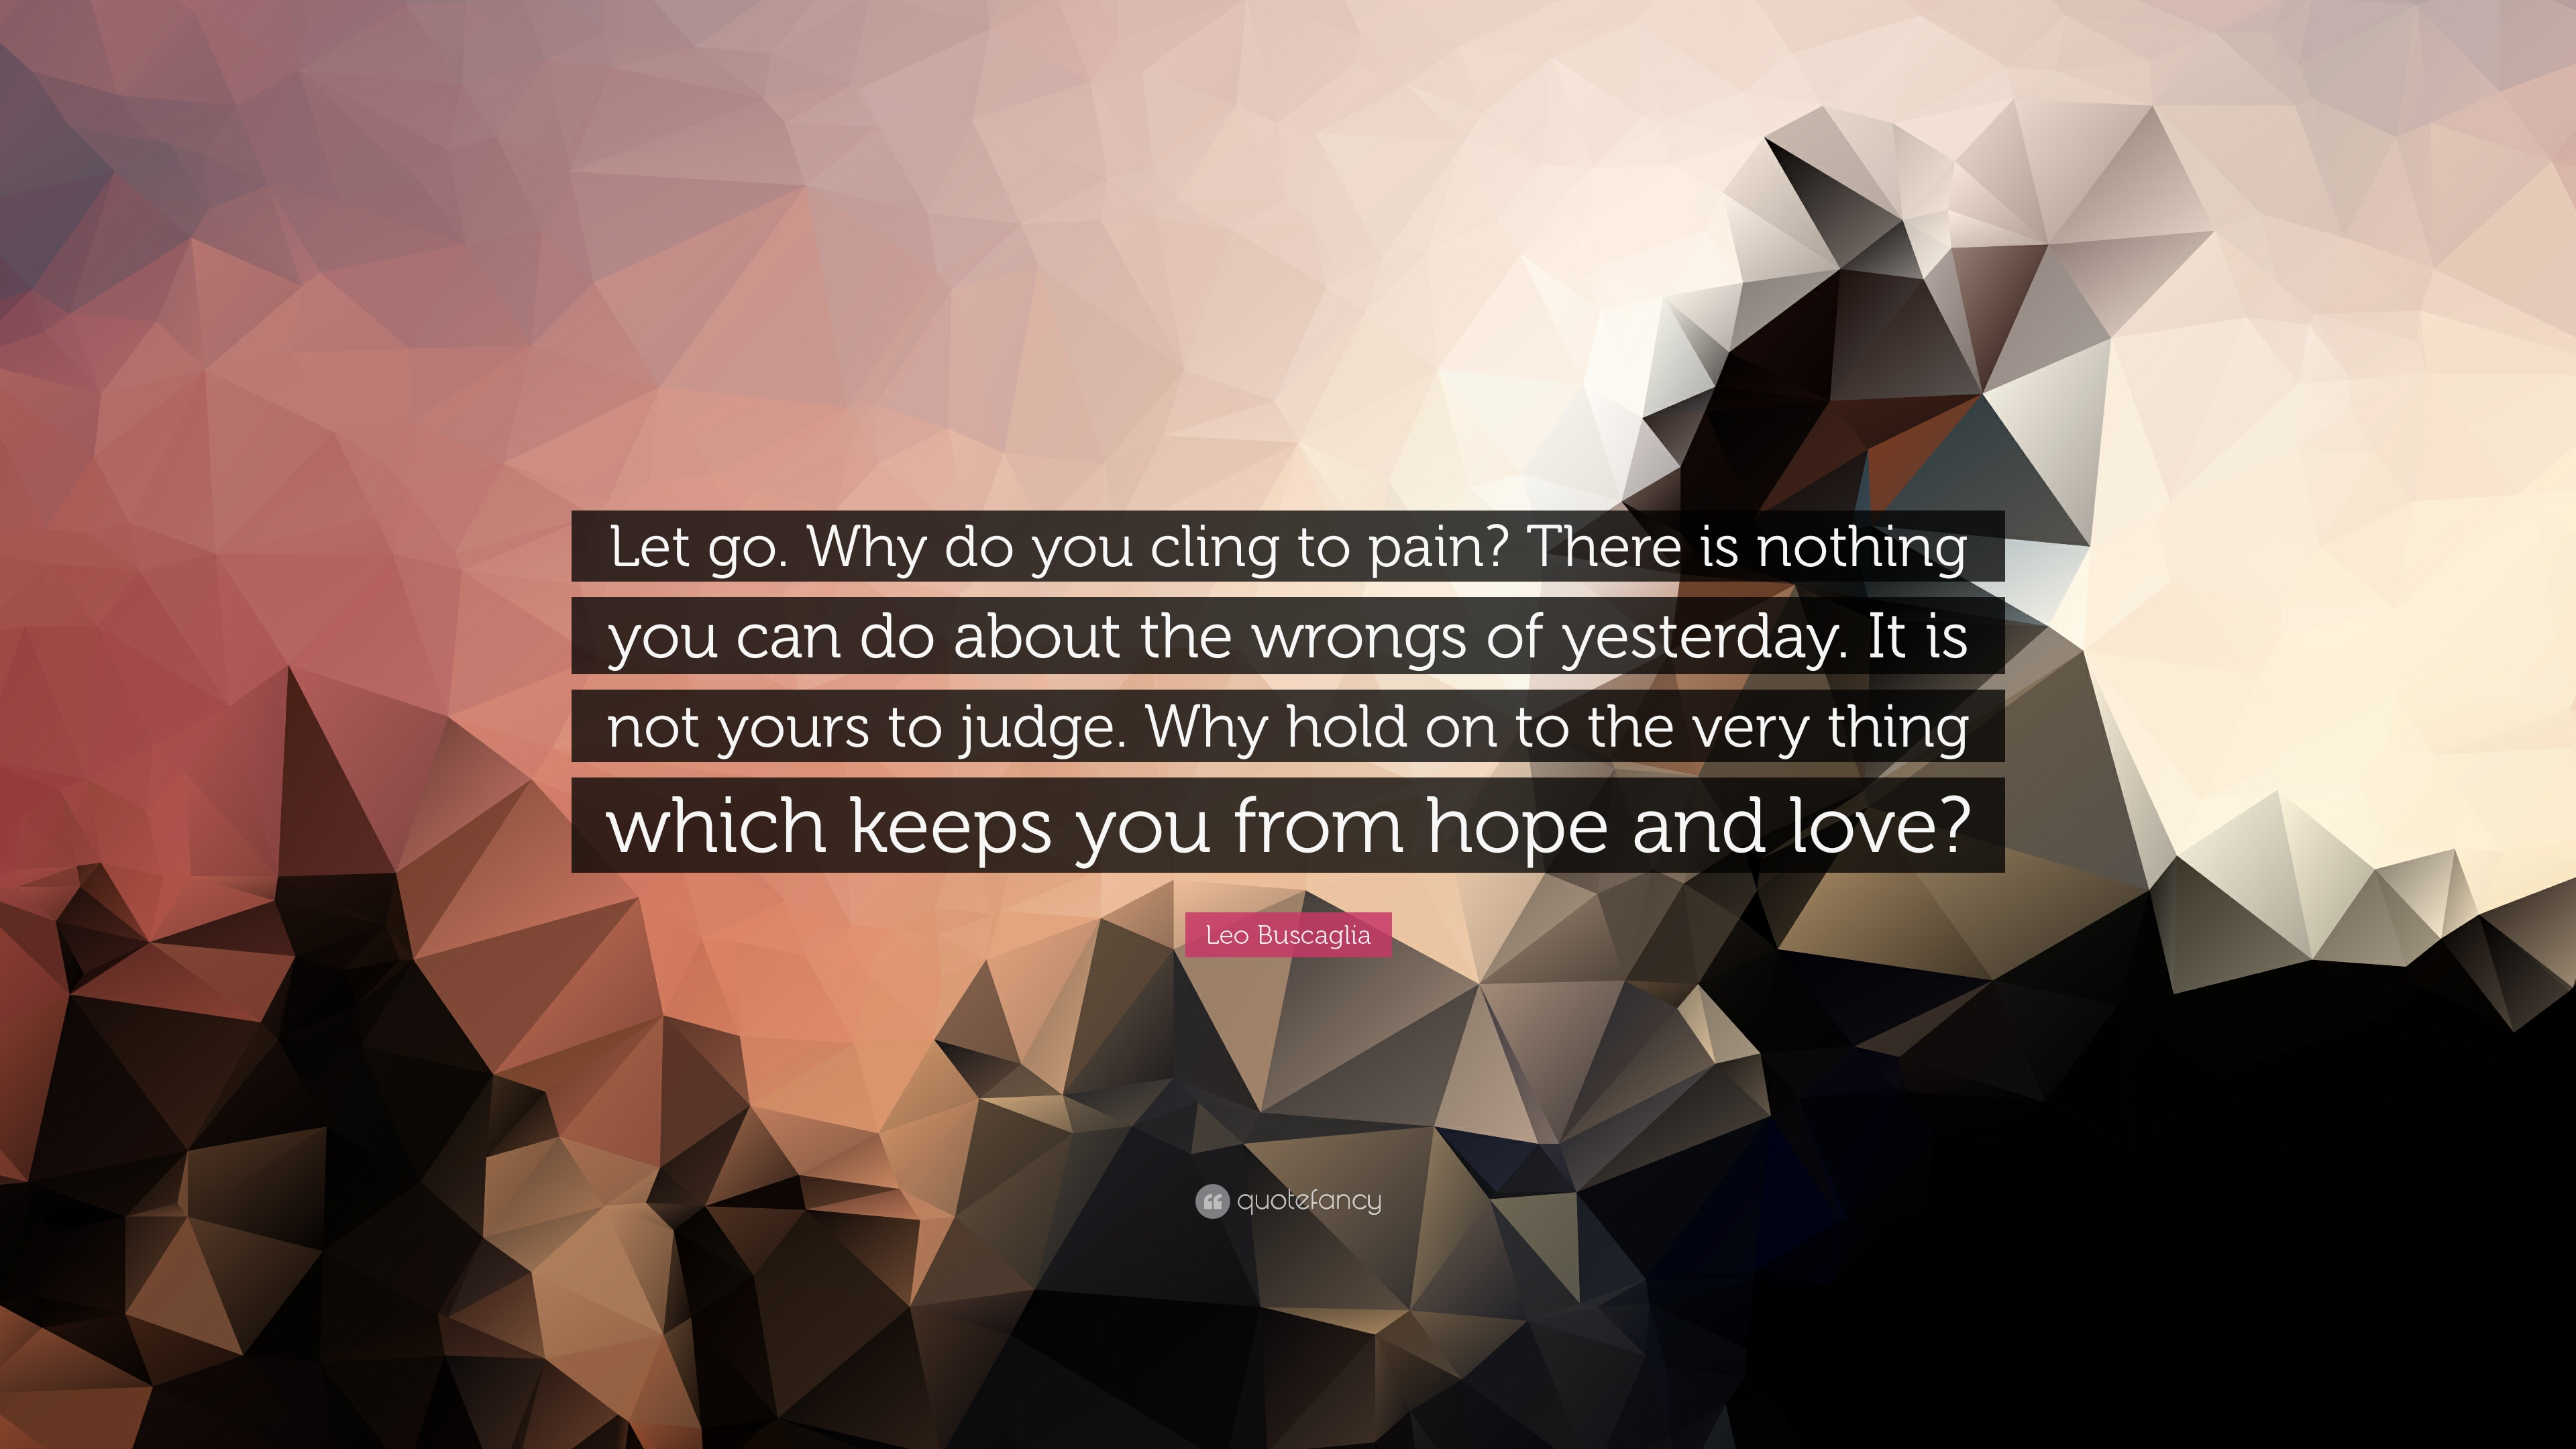 Do not hold on to what you already let go